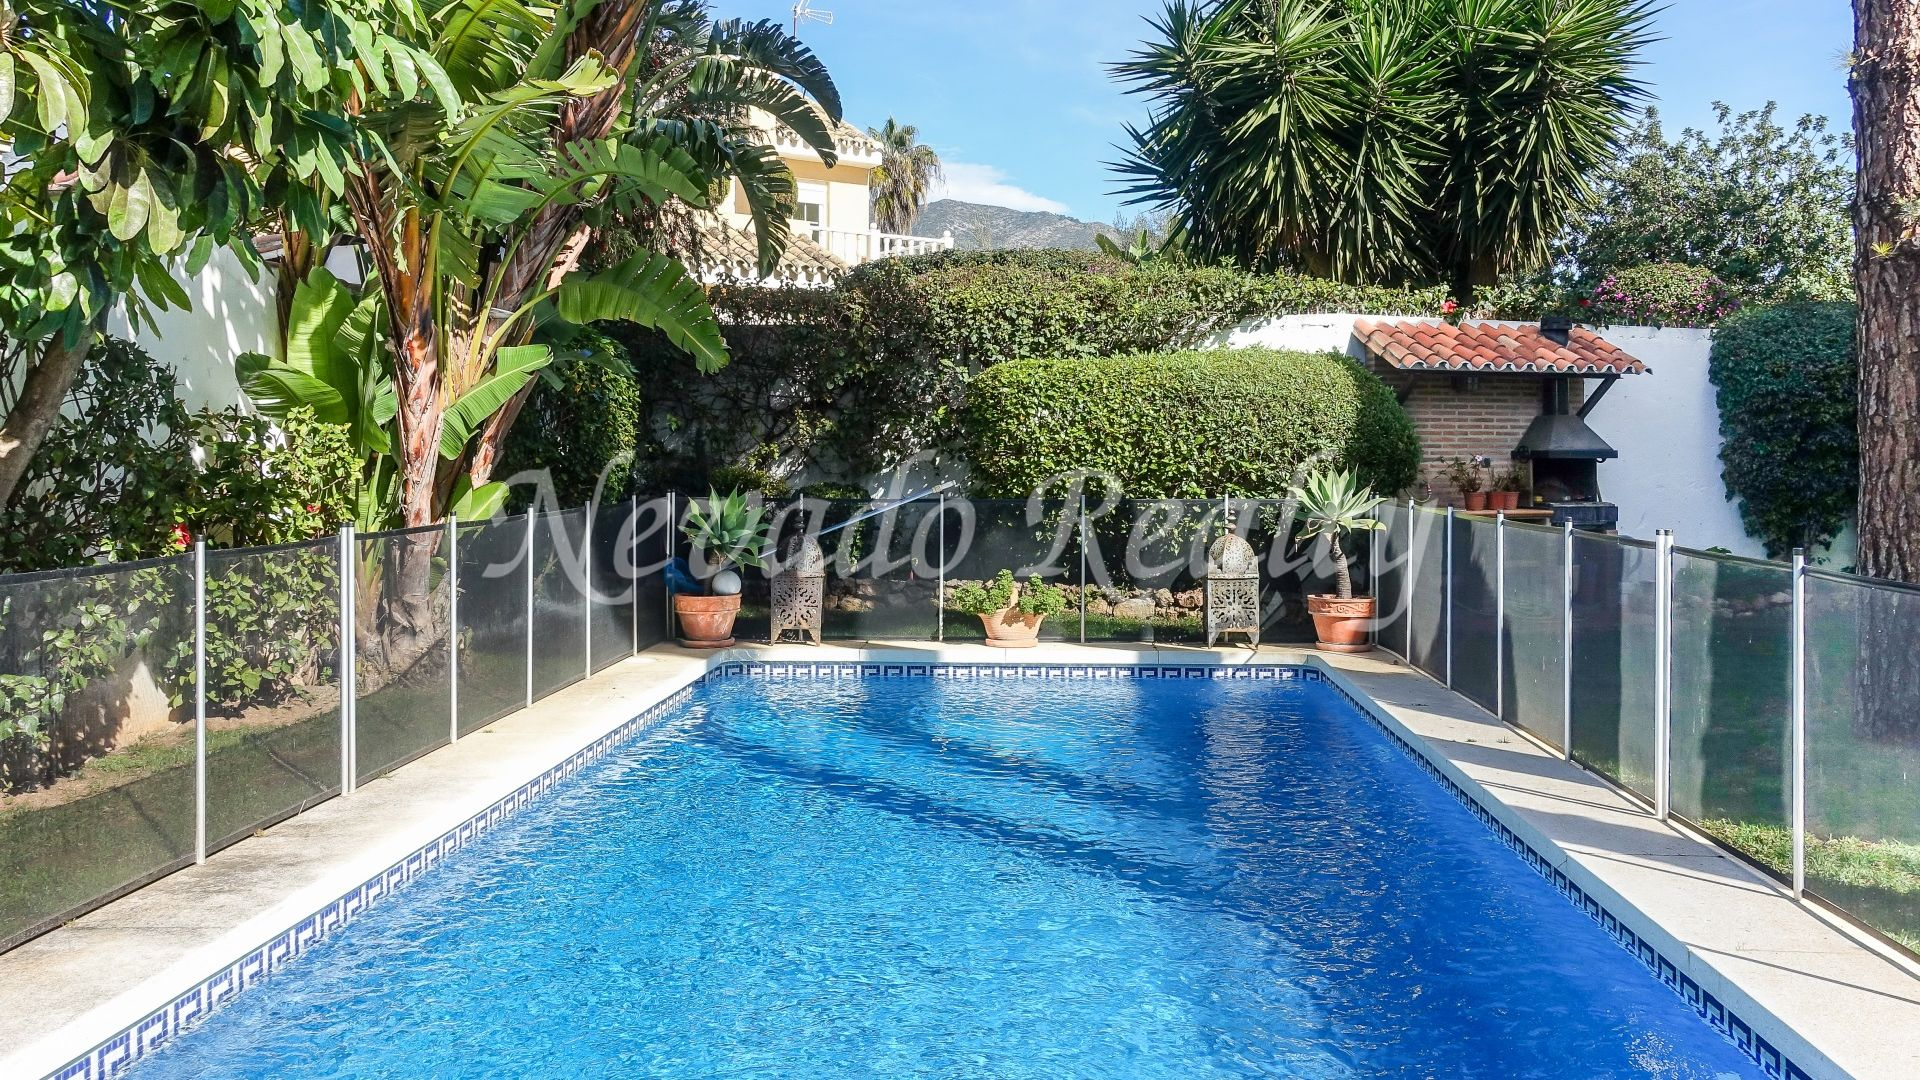 Excellent villa in the city center with sea and mountain views